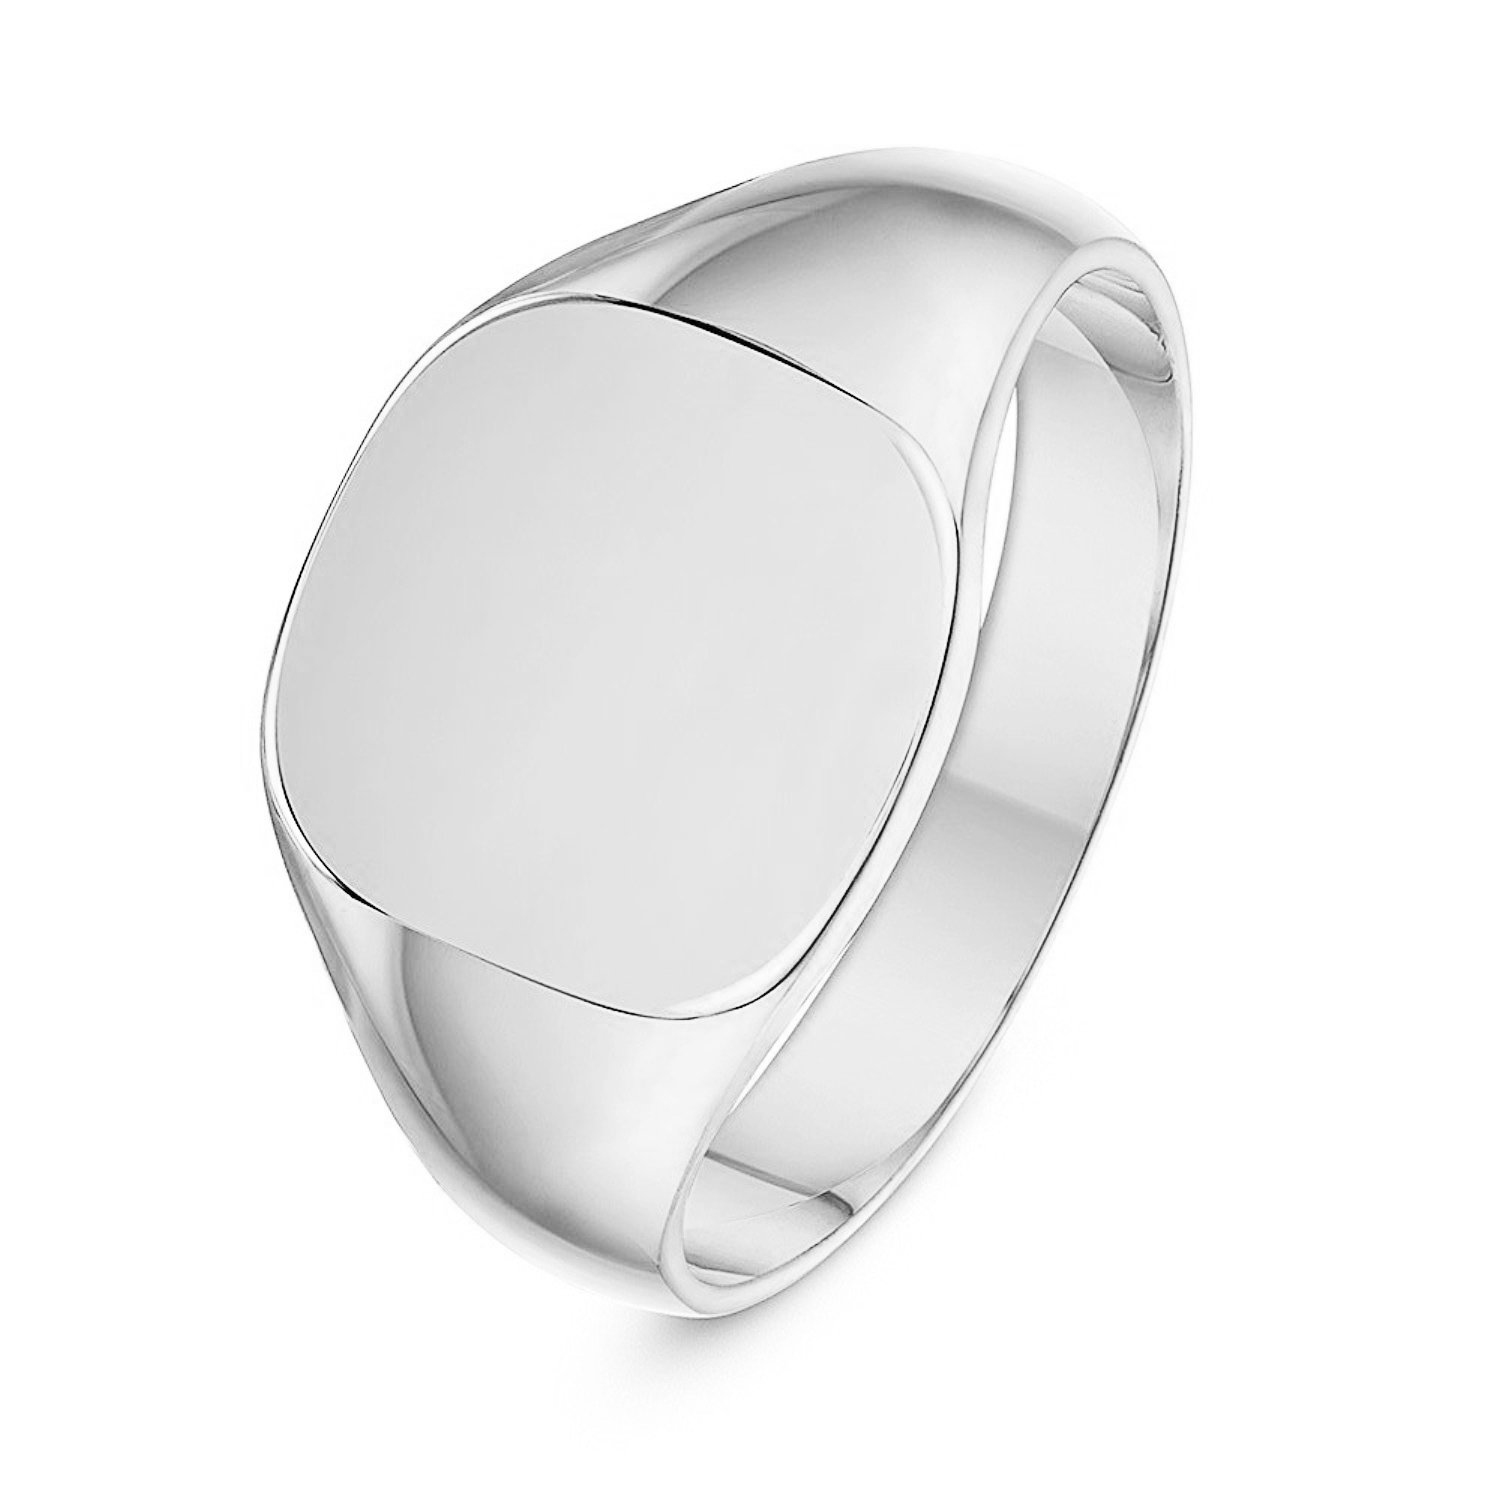 Unisex Sterling Silver Cushion Shape Heavy Weight Polished Signet Ring 12x12mm (6) by LANDA JEWEL (Image #1)